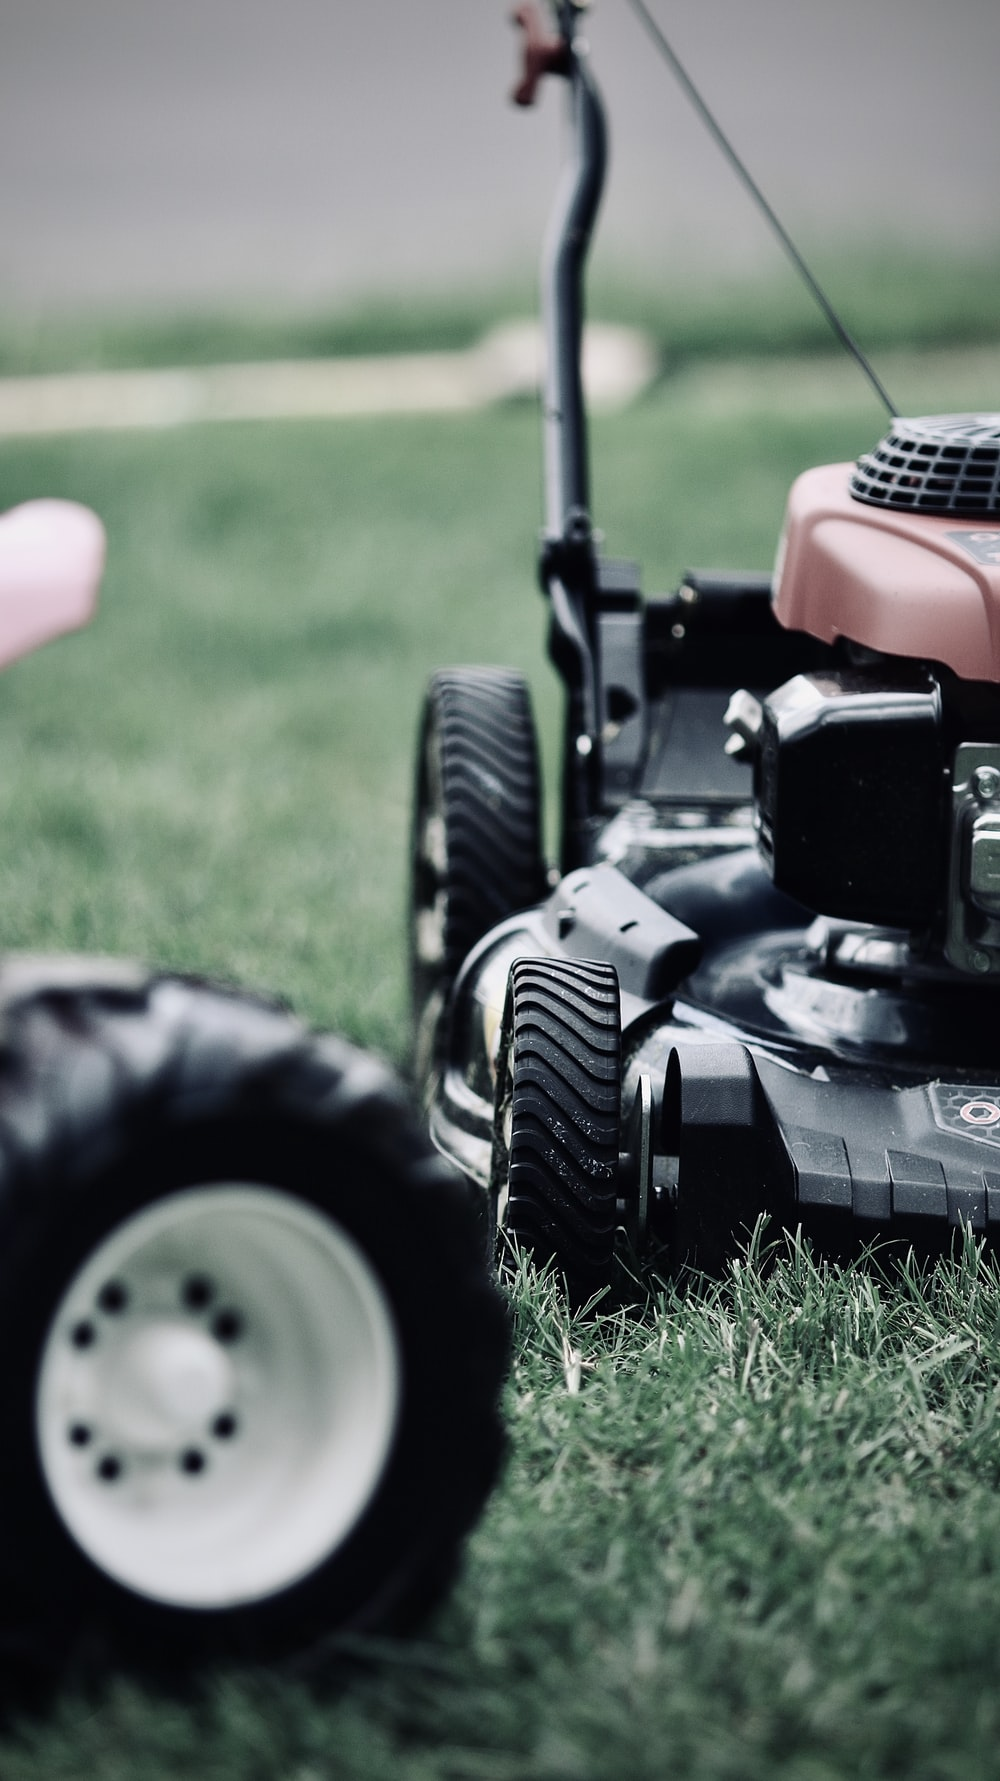 black and red ride on lawn mower on green grass field during daytime